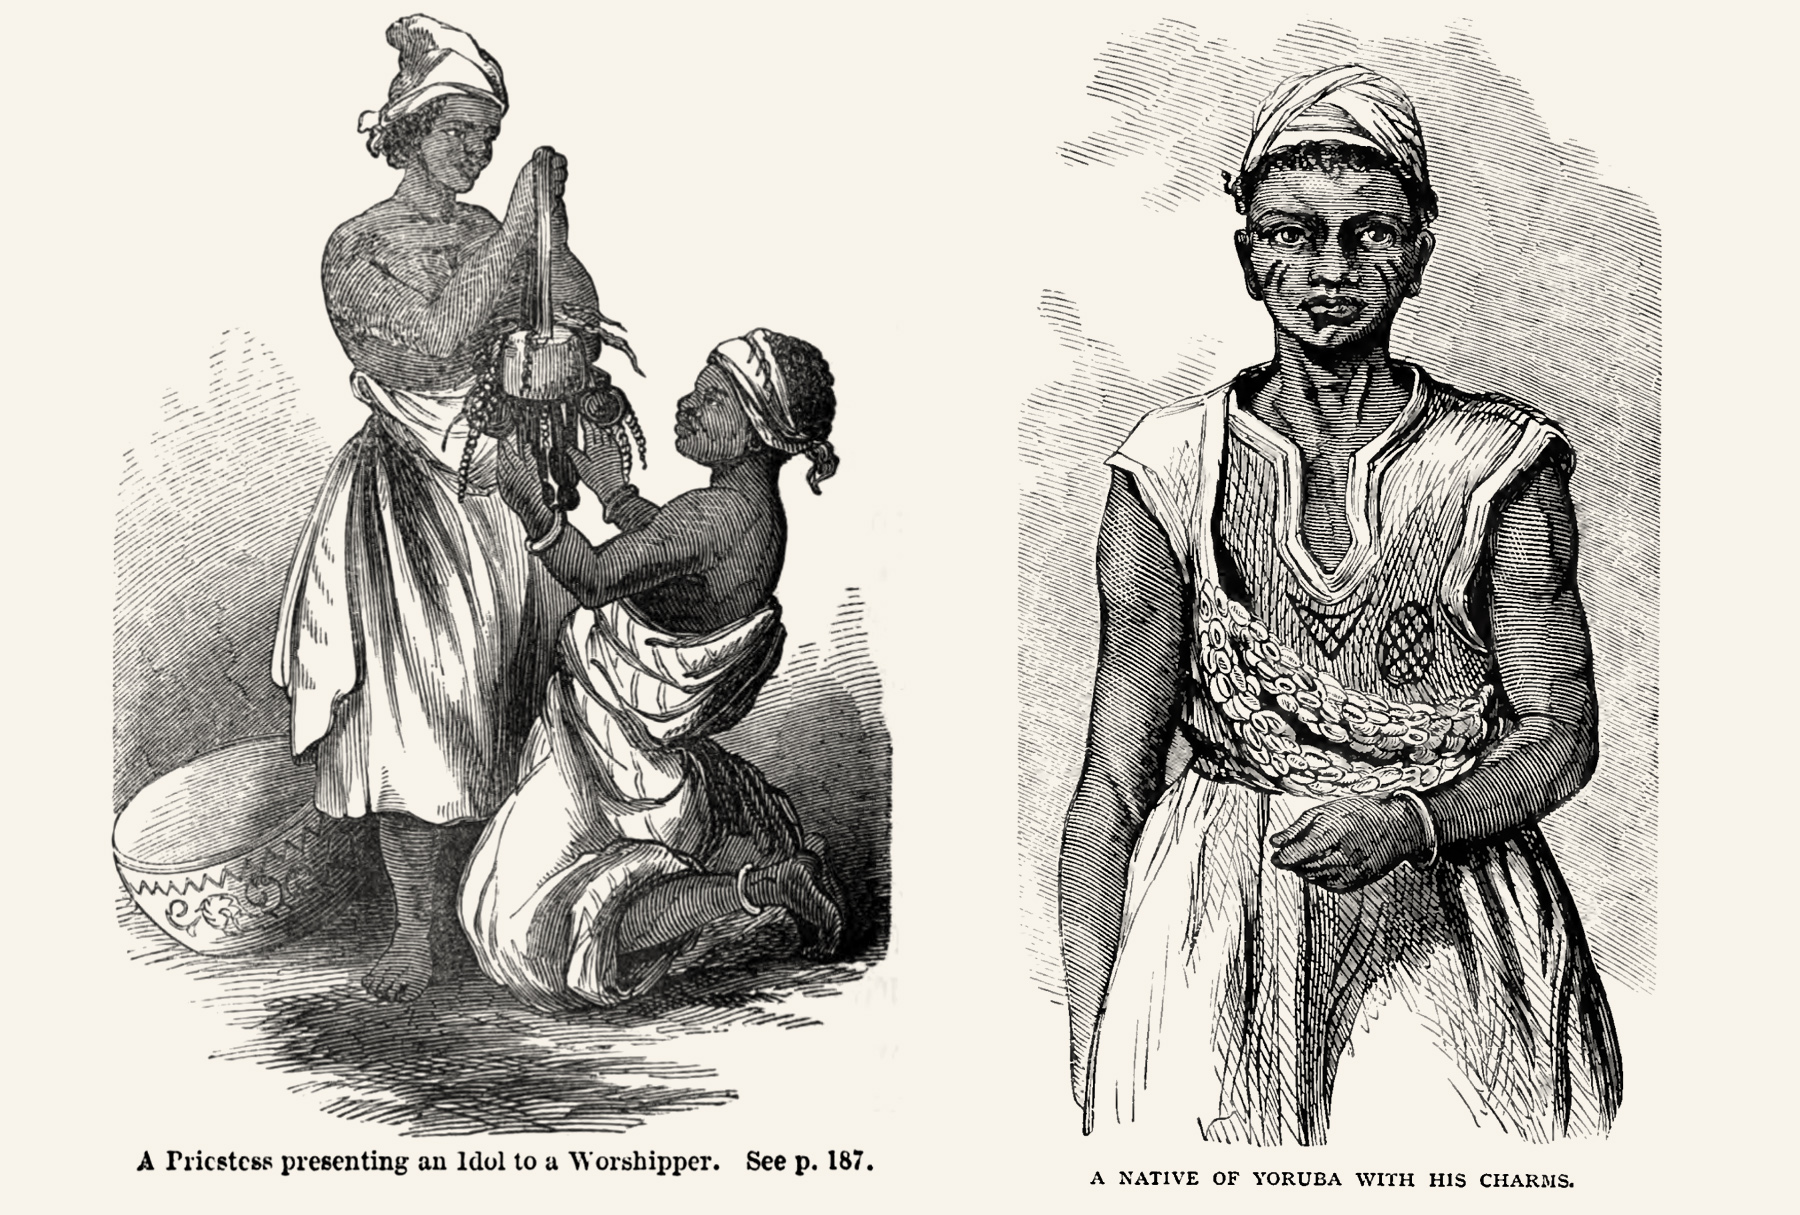 Compared to other book illustrations from that time, the missionaries'portraits of African people show them with dignity and respect.